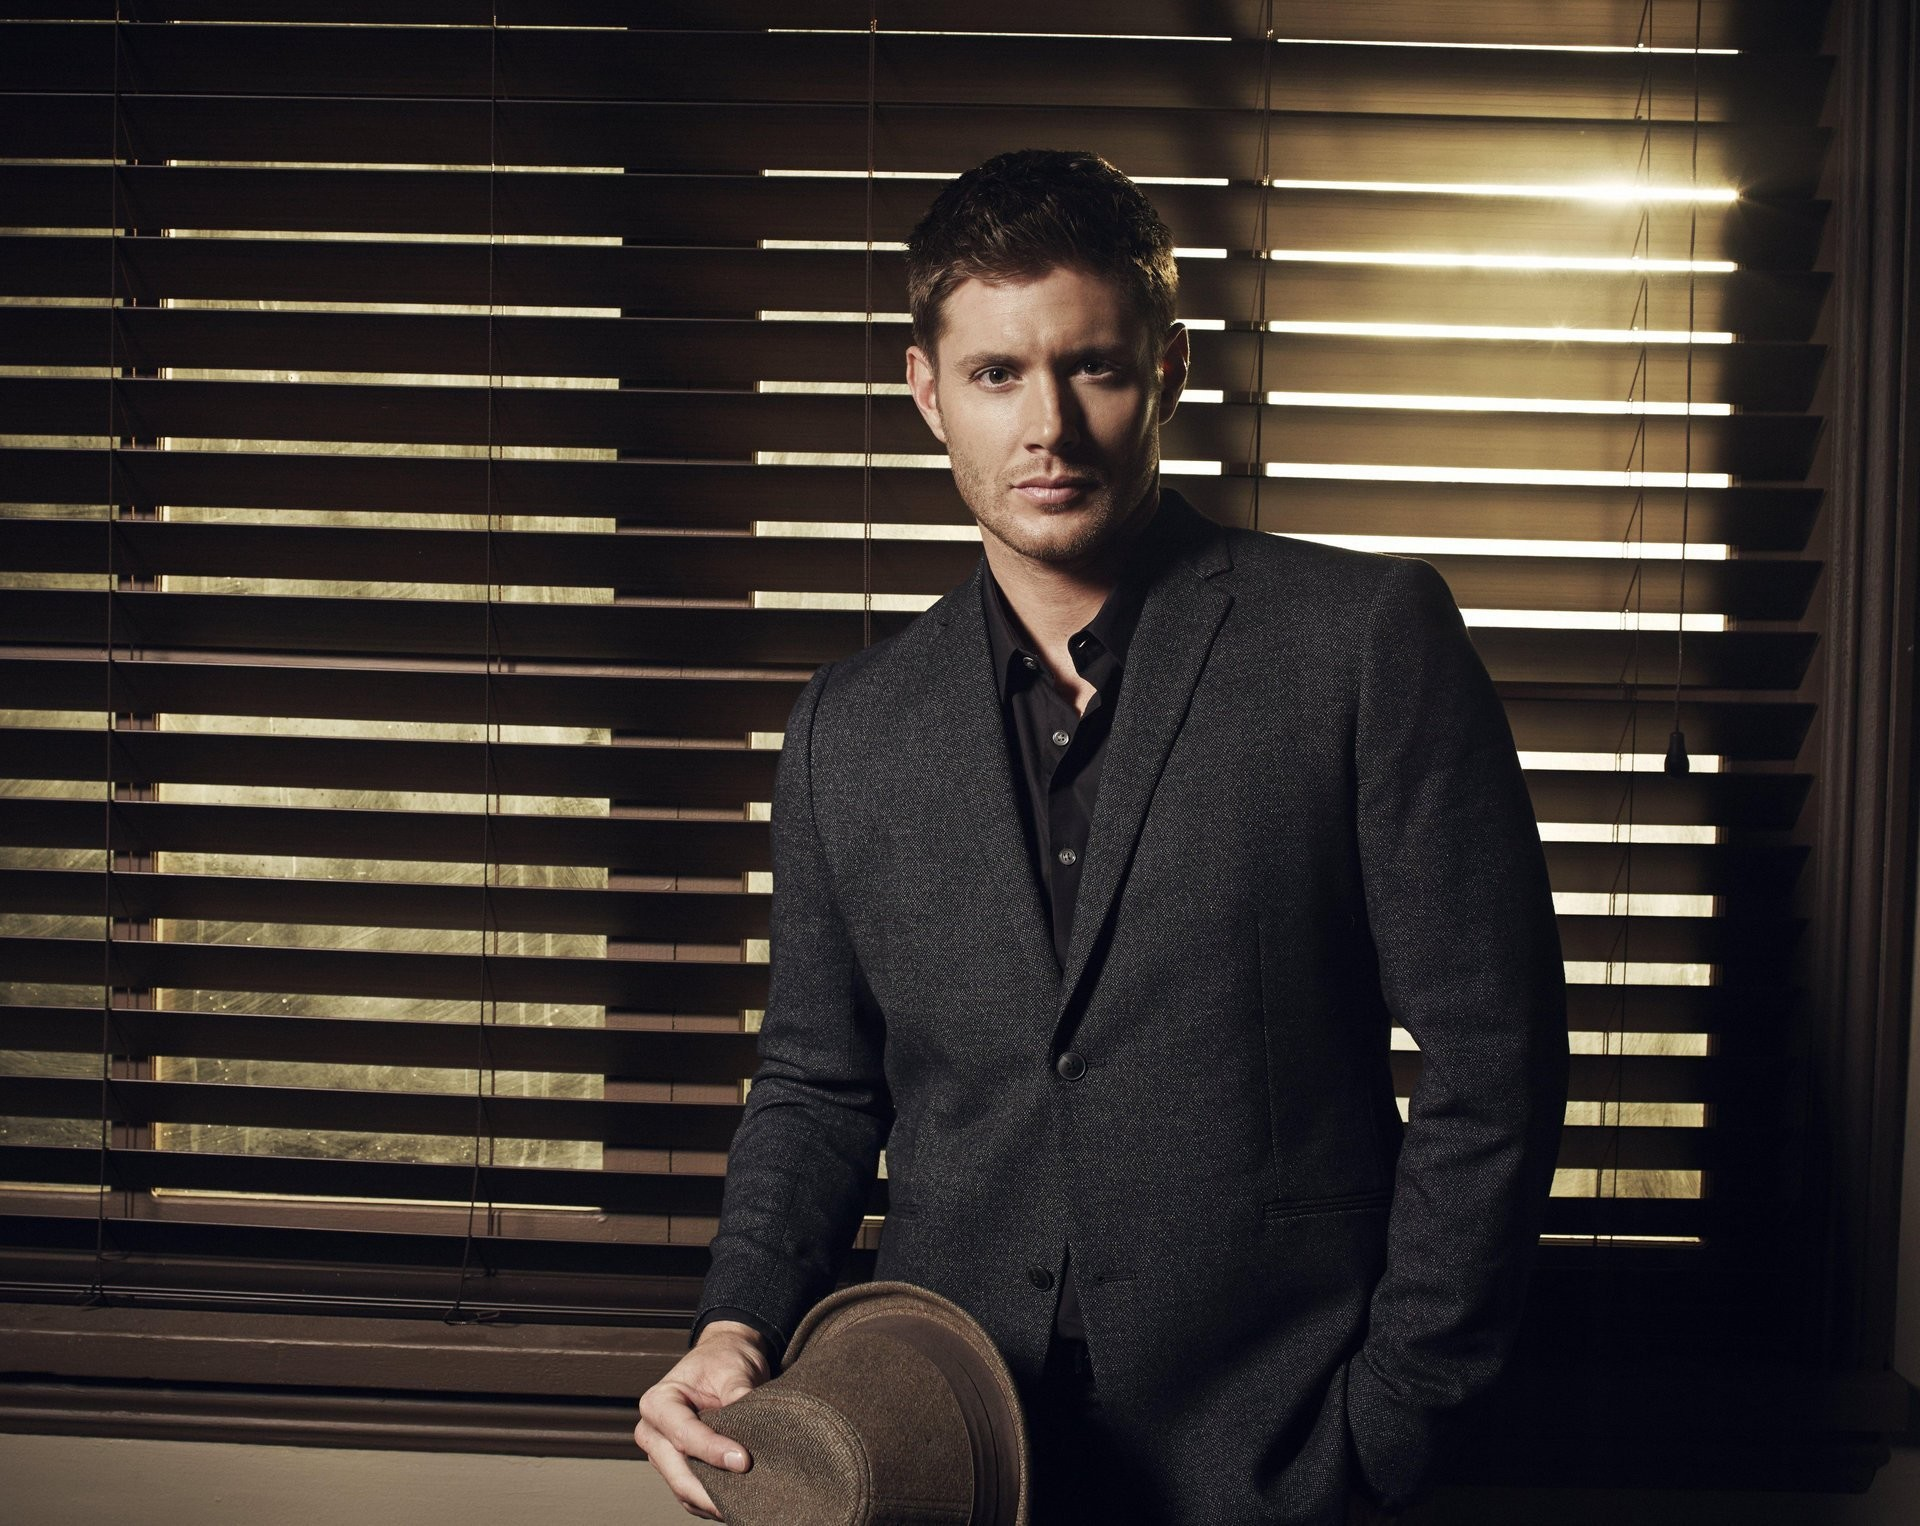 1920x1526 jensen ackles jensen ackles men suit hat actor tv series supernatural  season 9 supernatural dean winchester